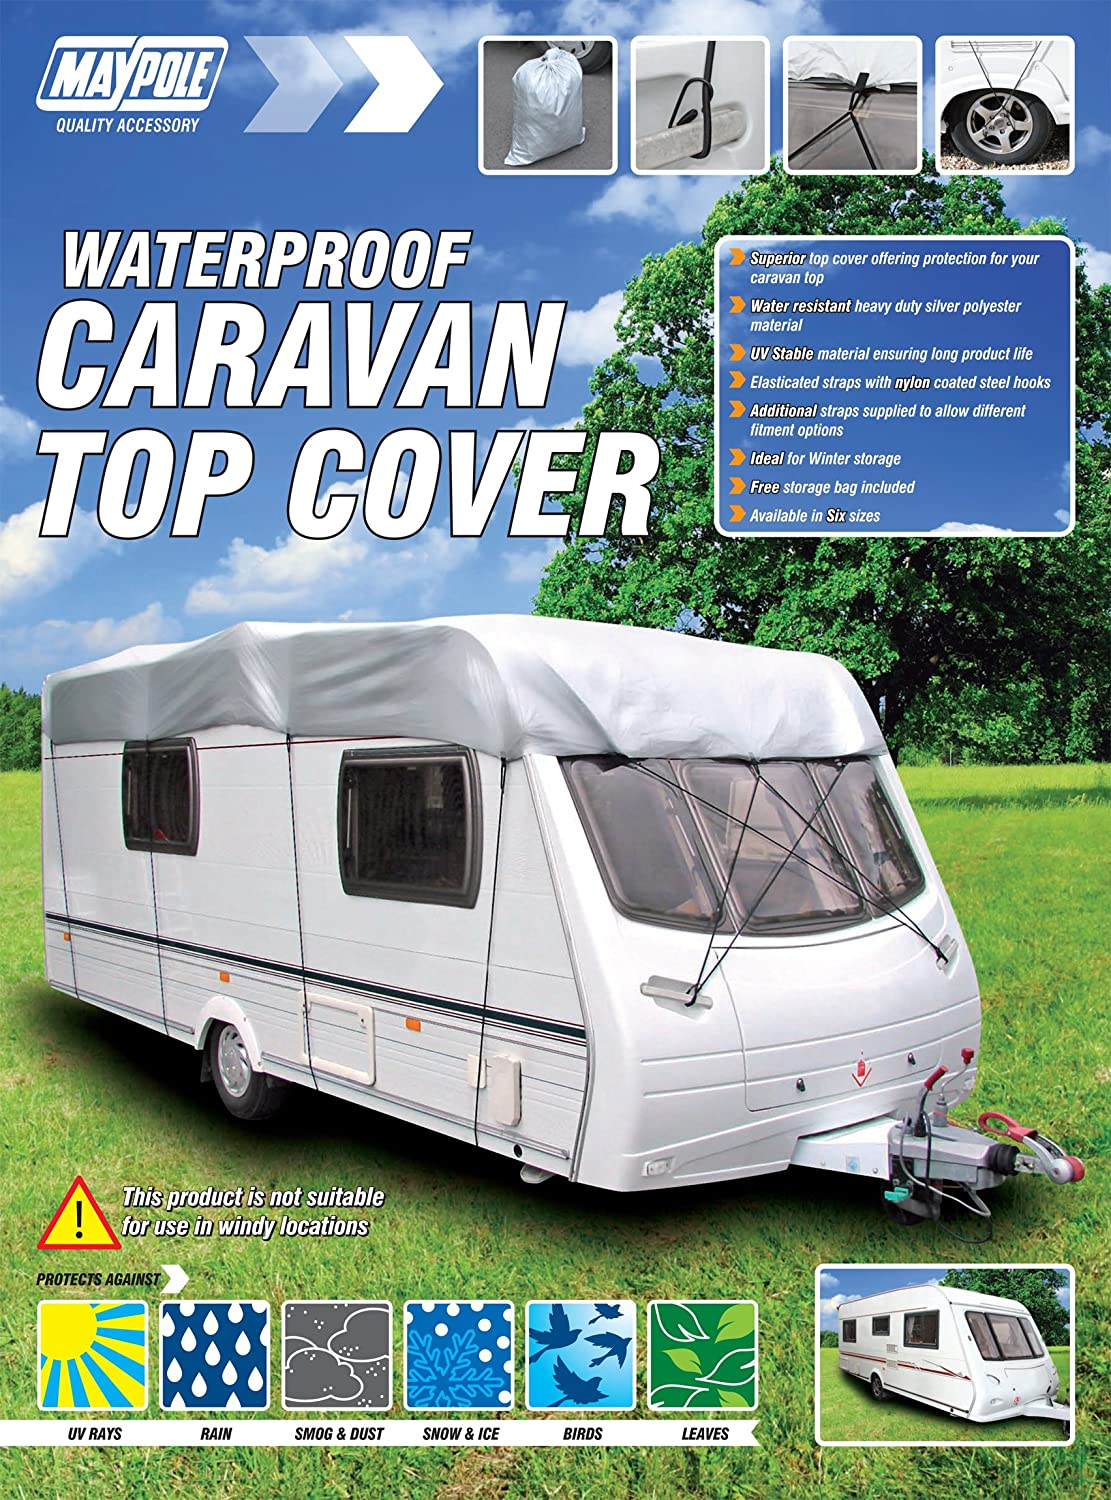 Maypole 9261 Caravan Top Cover Fits up to 4.1 m/ 14 ft